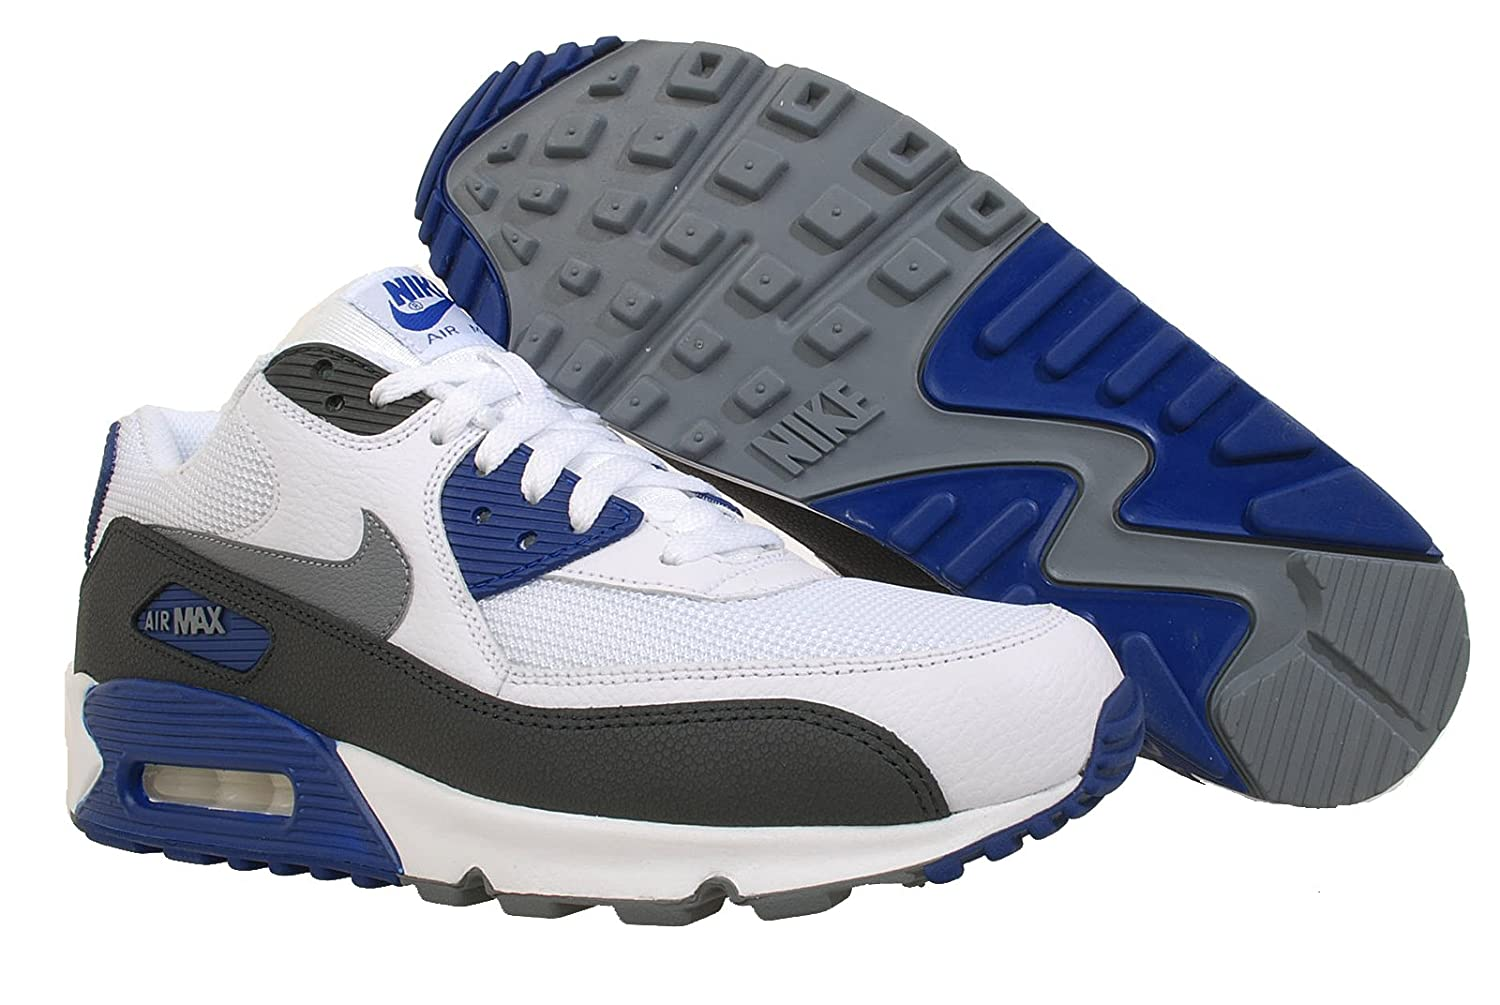 Nike Air max 90 essential 104 (M78), Size 48, 5 White